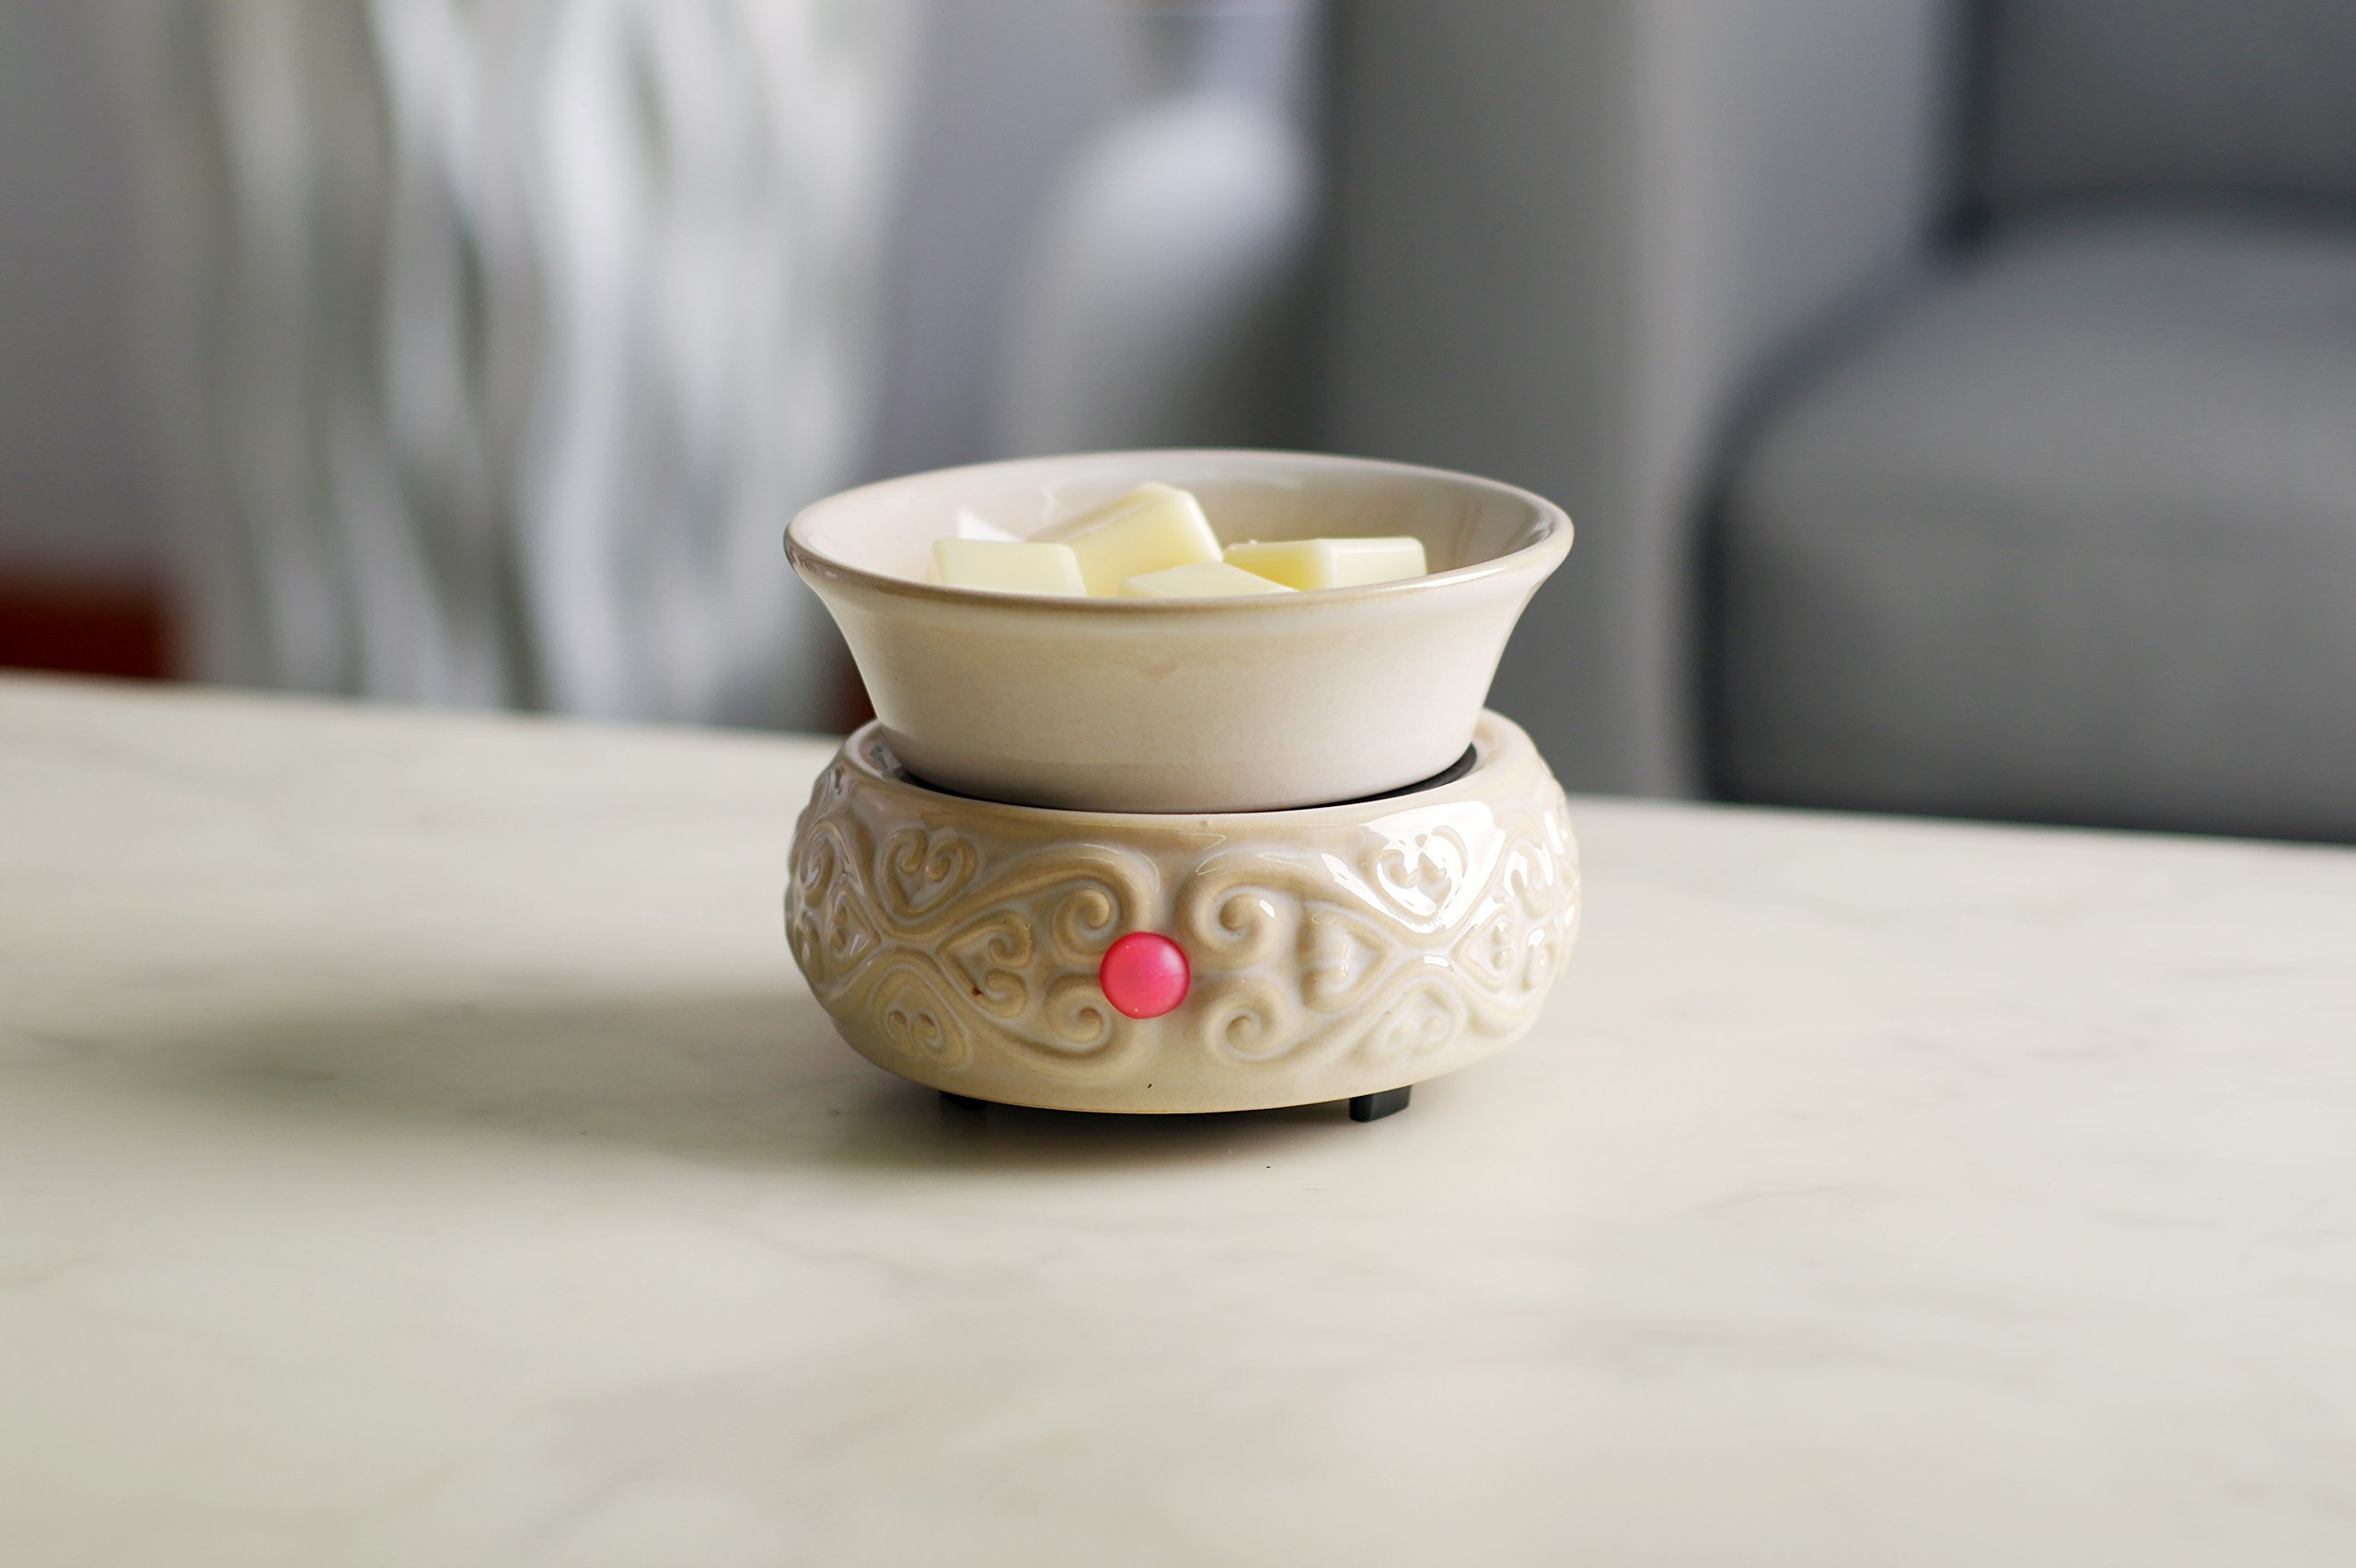 Hosley's Cream Ceramic Electric Fragrance Candle Wax Warmer. Ideal for Spa and Aromatherapy. Use with HOSLEY Brand Wax Melts / Cubes, Essential Oils and Fragrance Oils O2 by Hosley